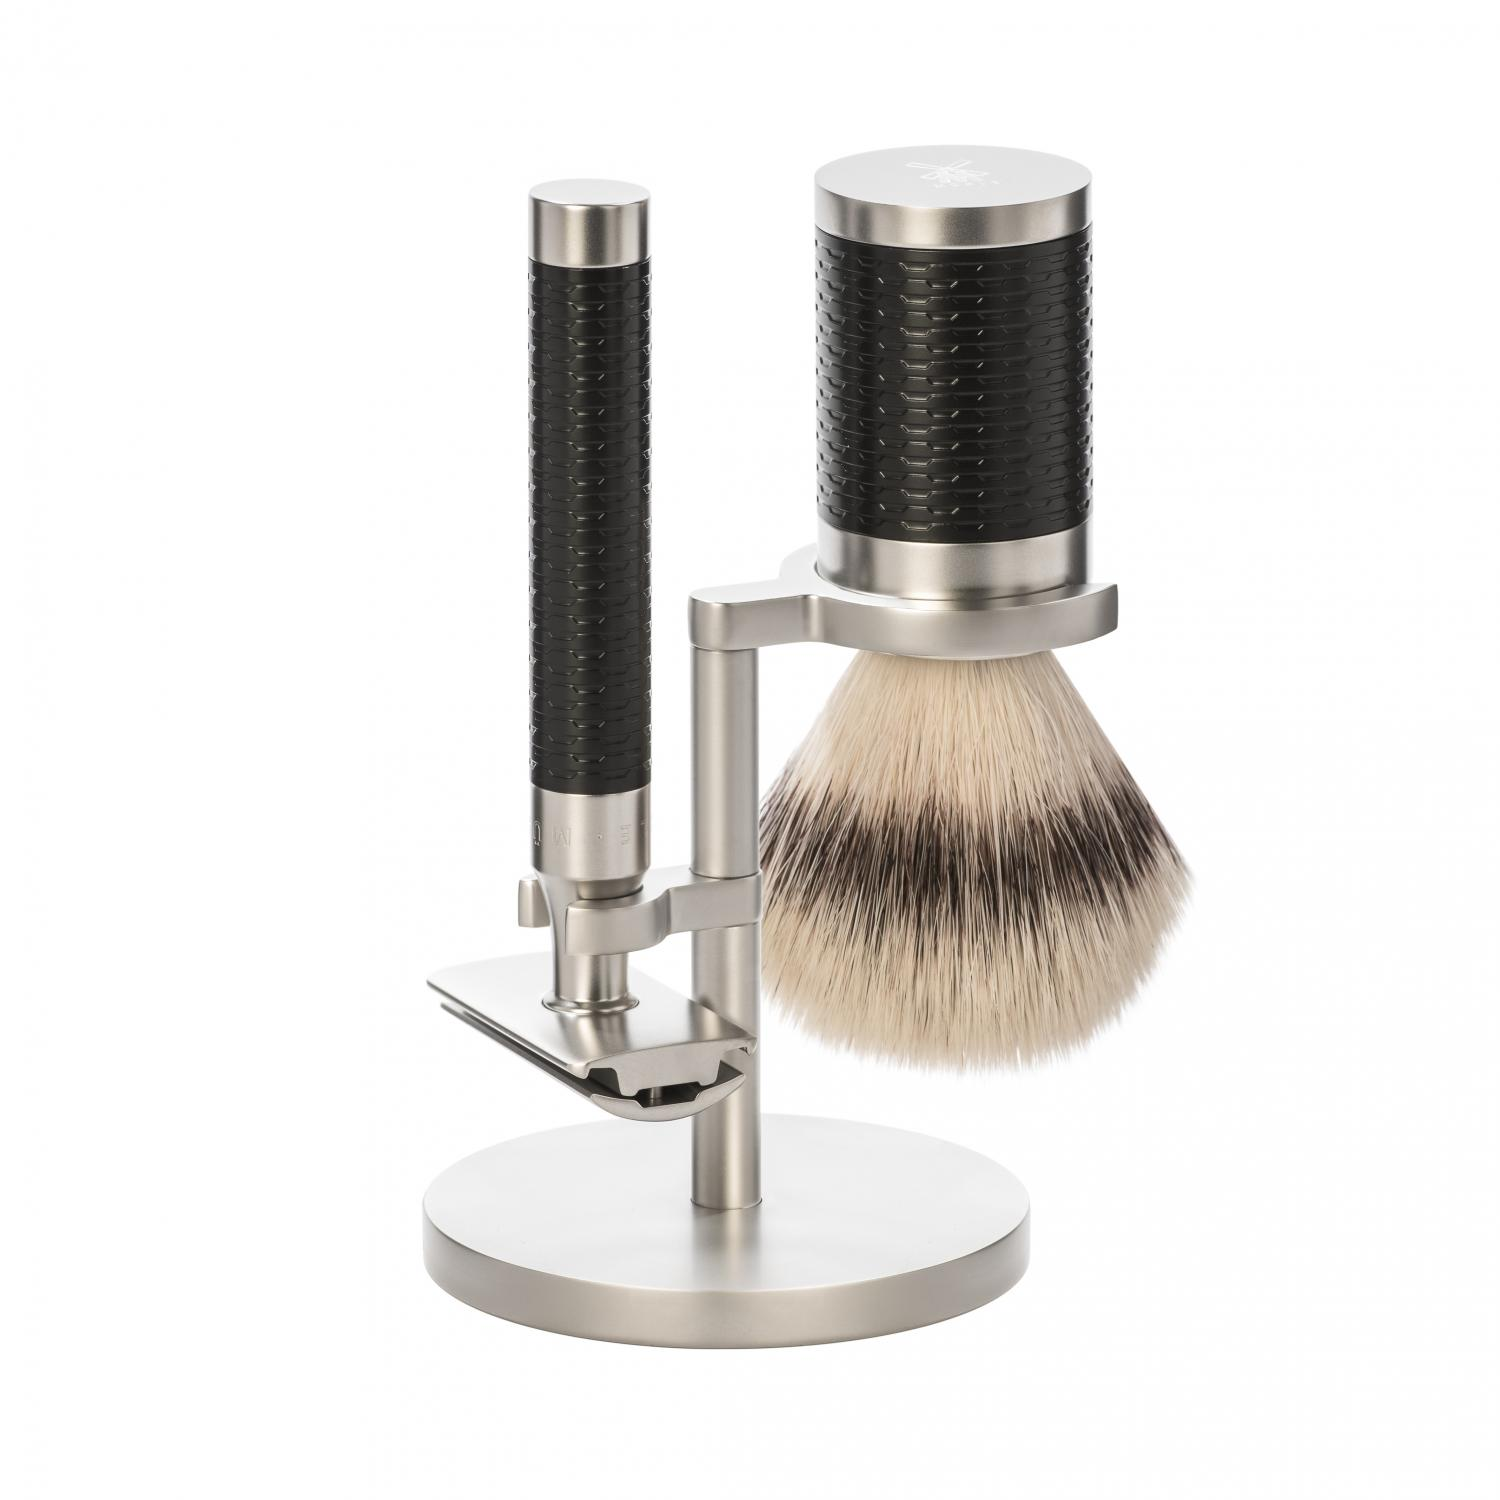 S31M96SR MÜHLE ROCCA Stainless Steel/Black 3-Piece Silvertip Fibre/Safety Razor Shaving Set